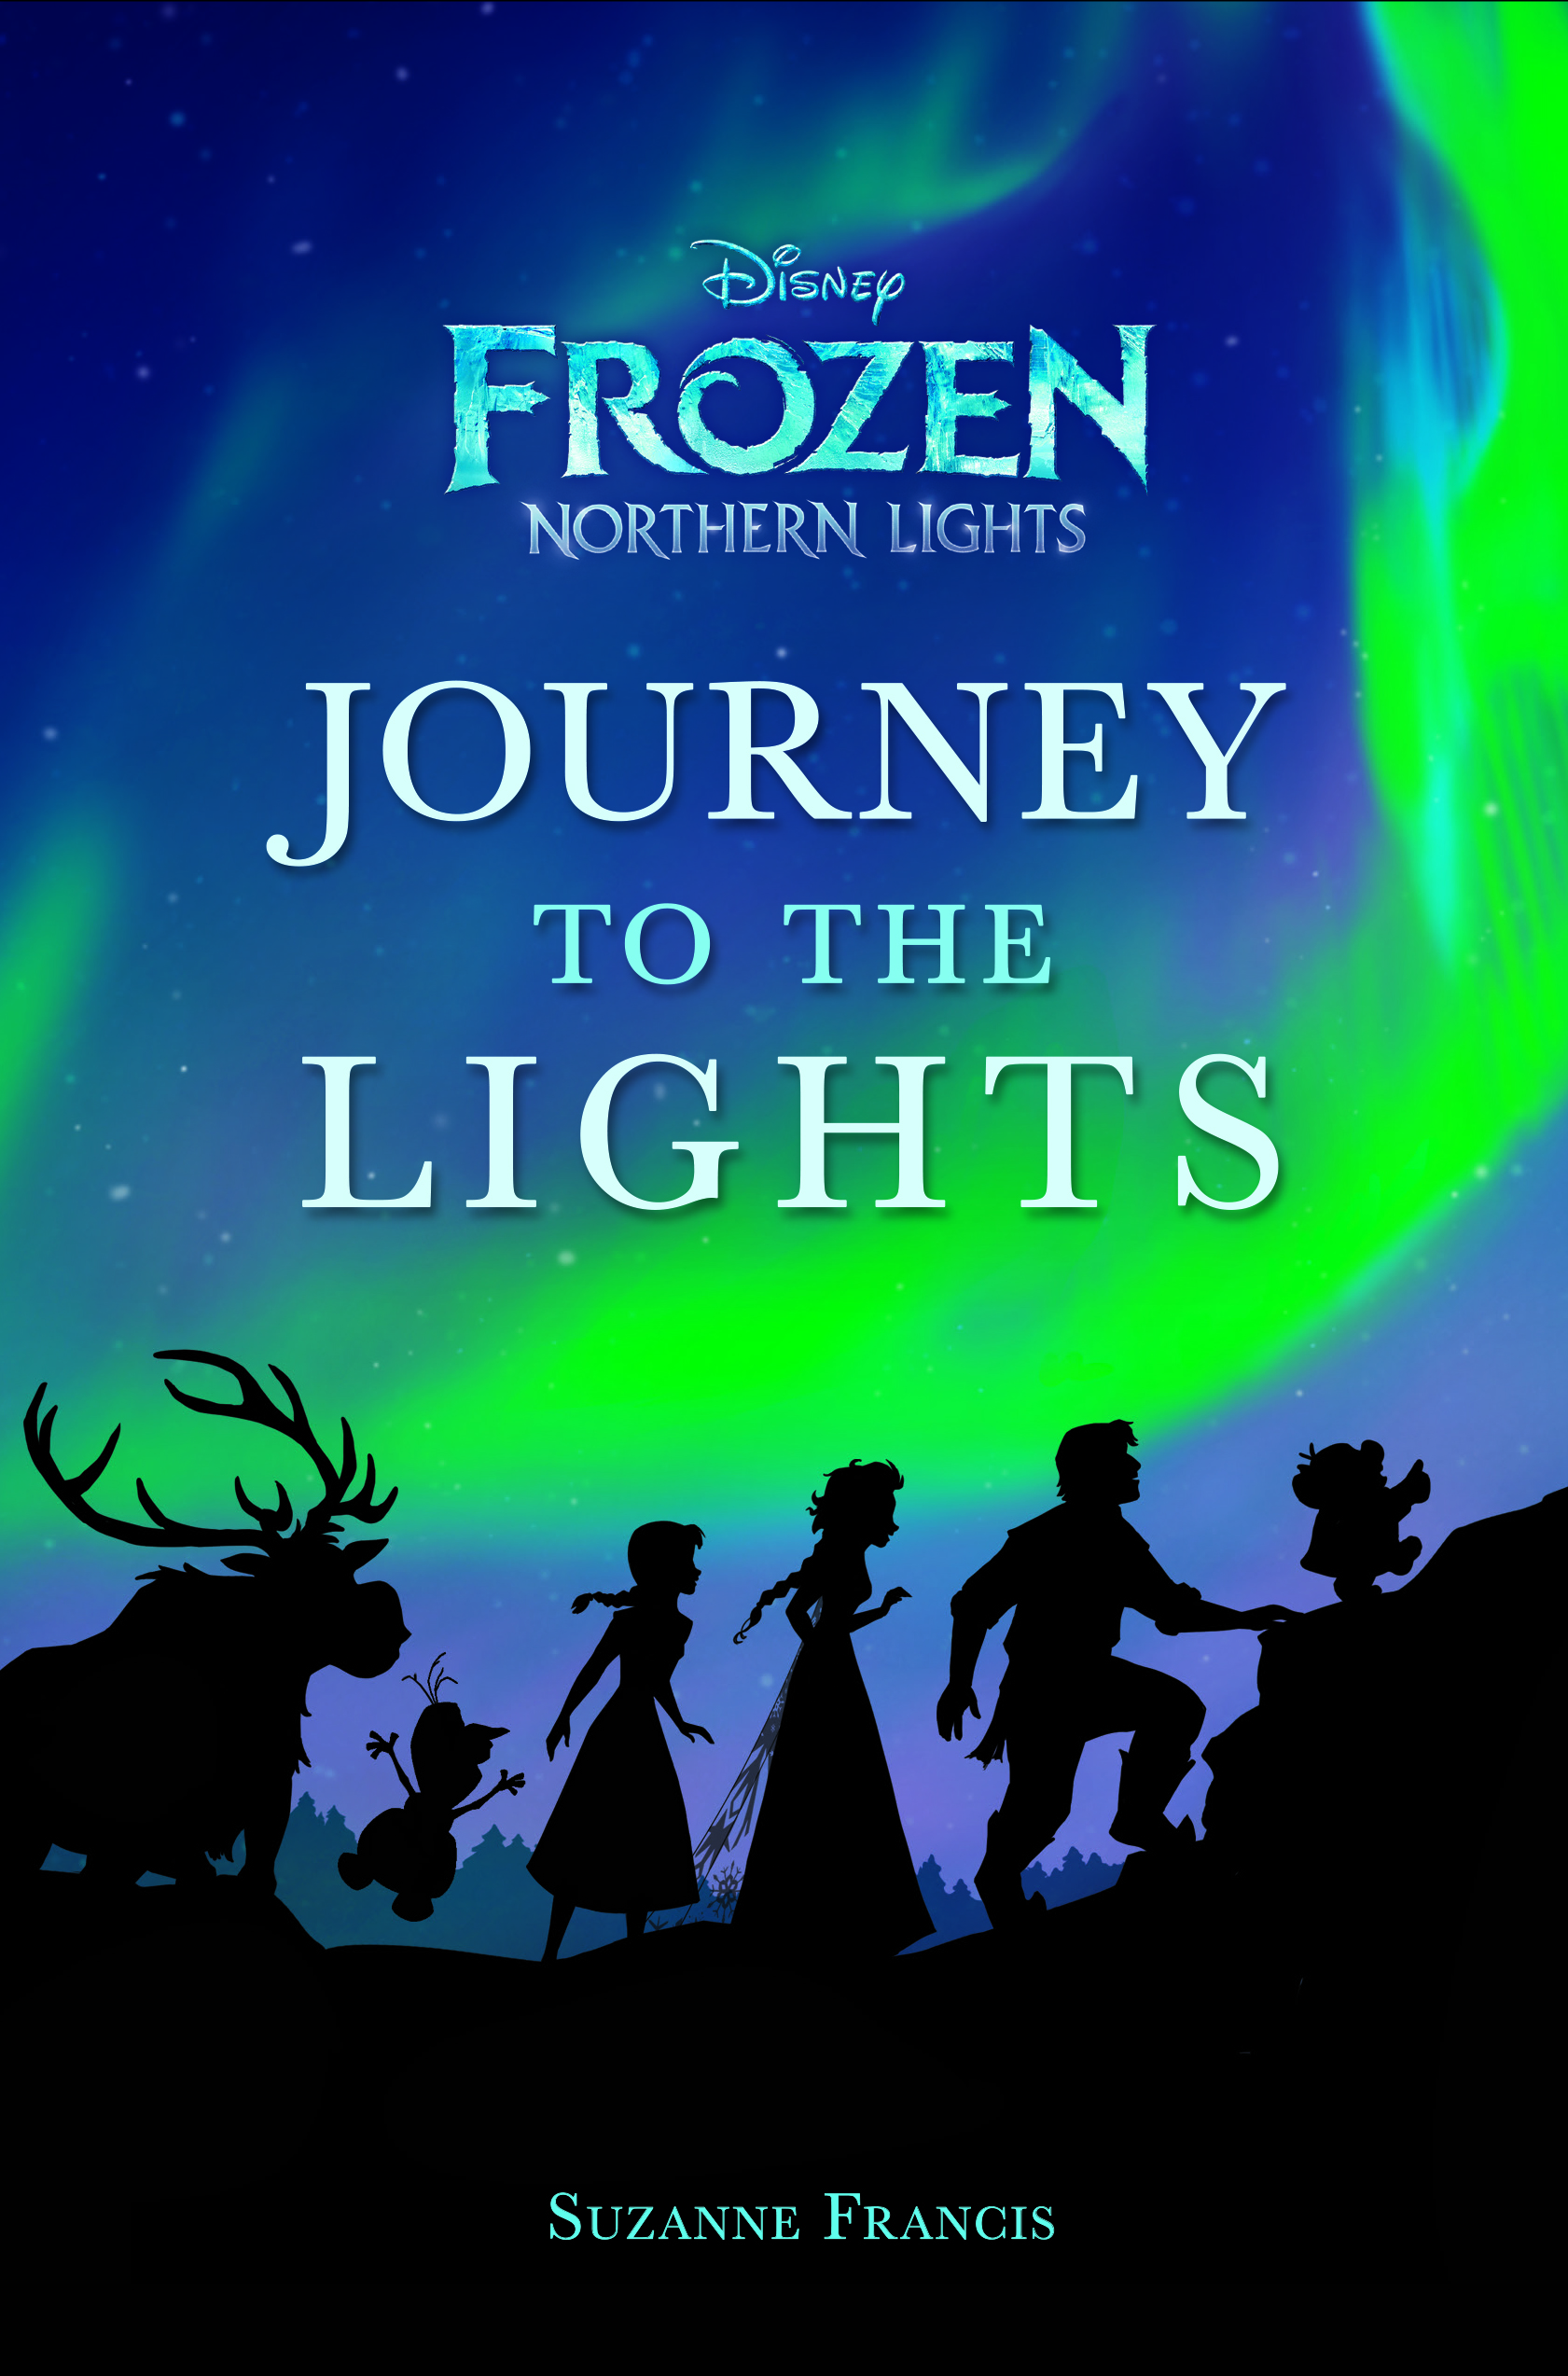 Journey To The Lights | Disney Wiki | FANDOM powered by Wikia